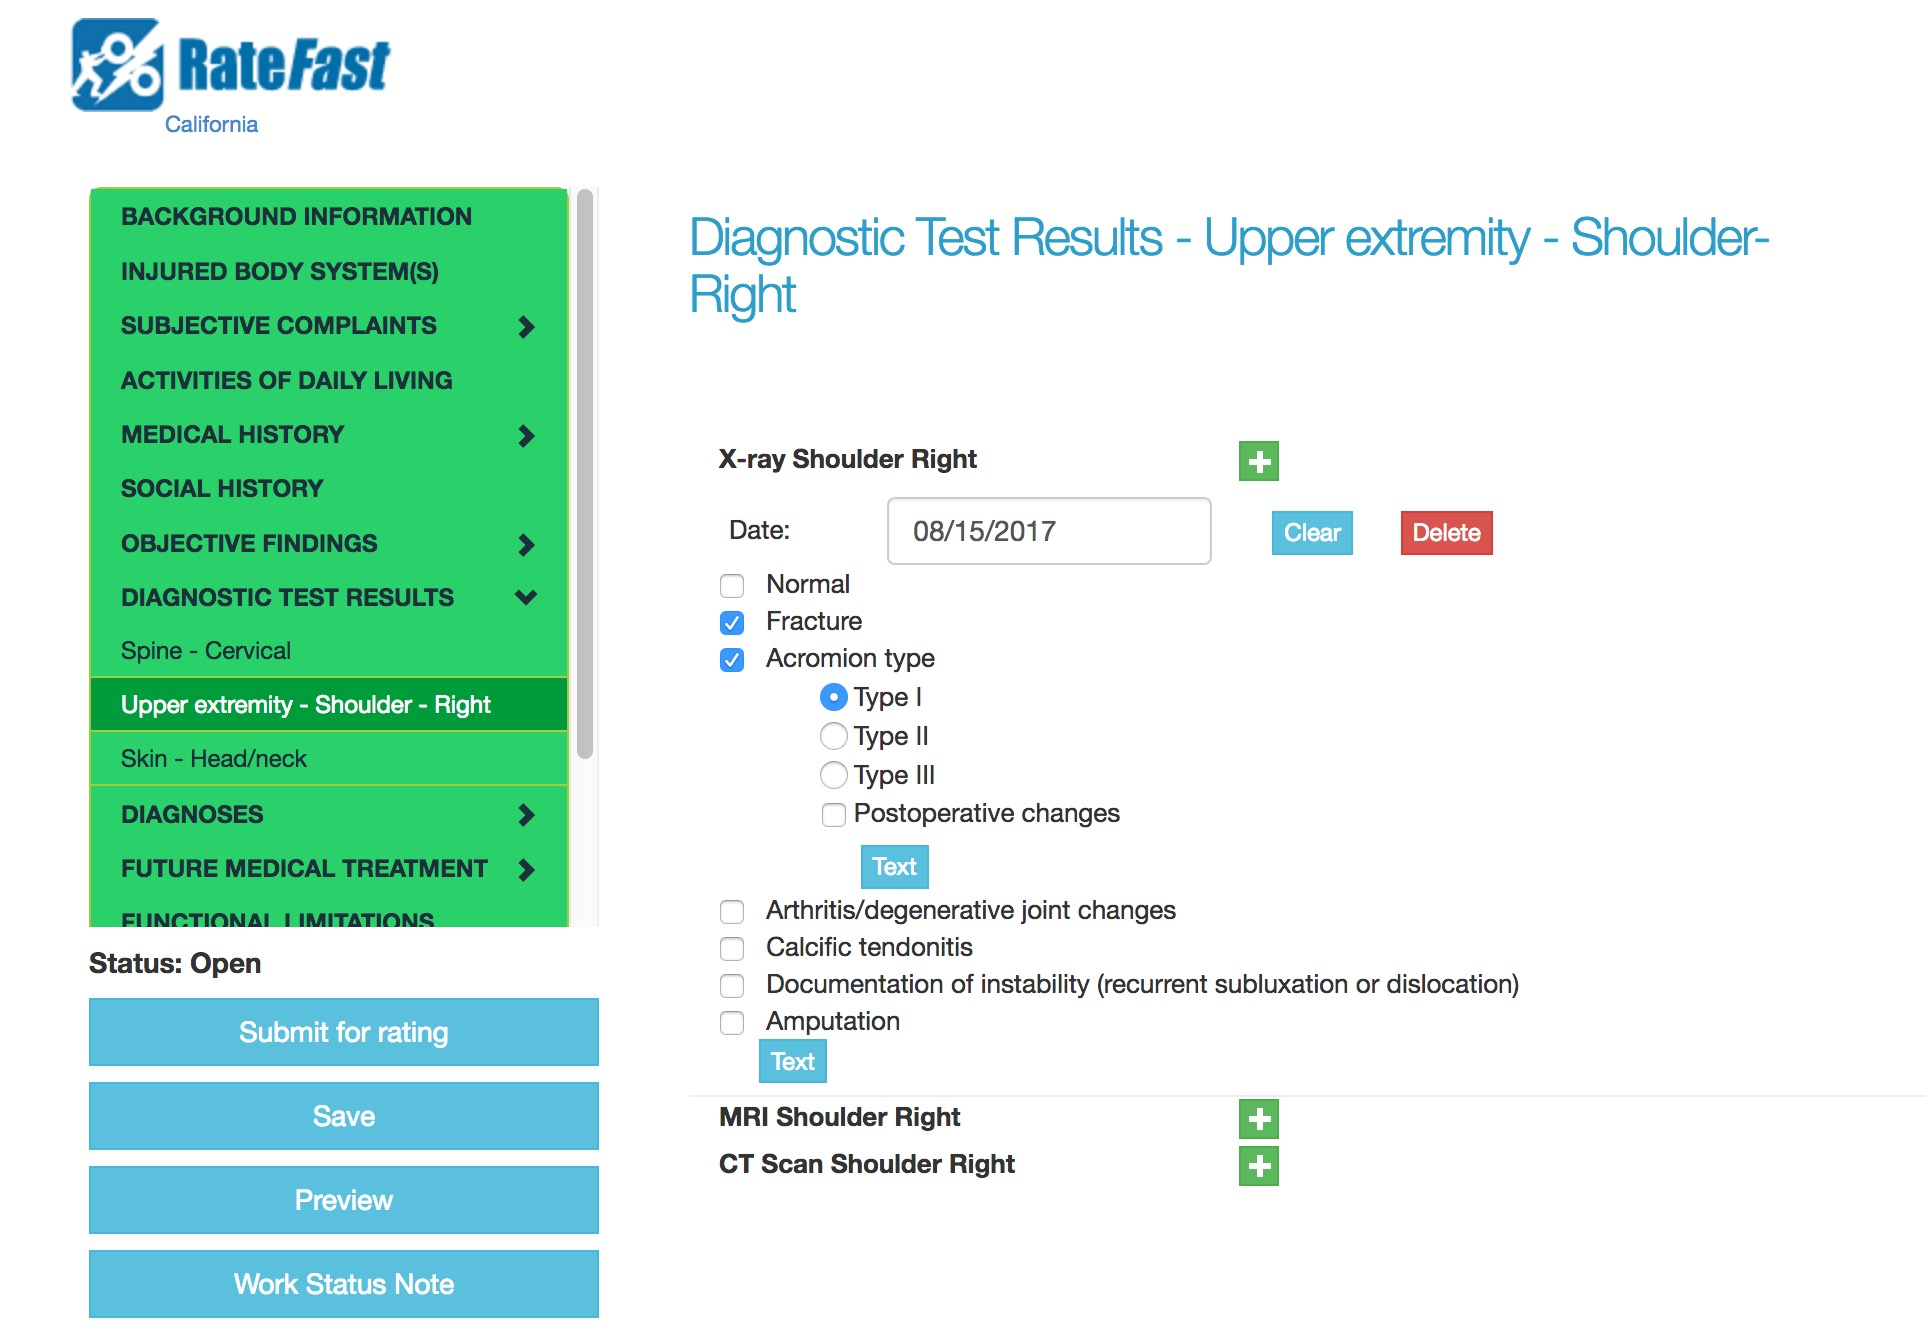 diagnostic-tests-ratefast-screenshot